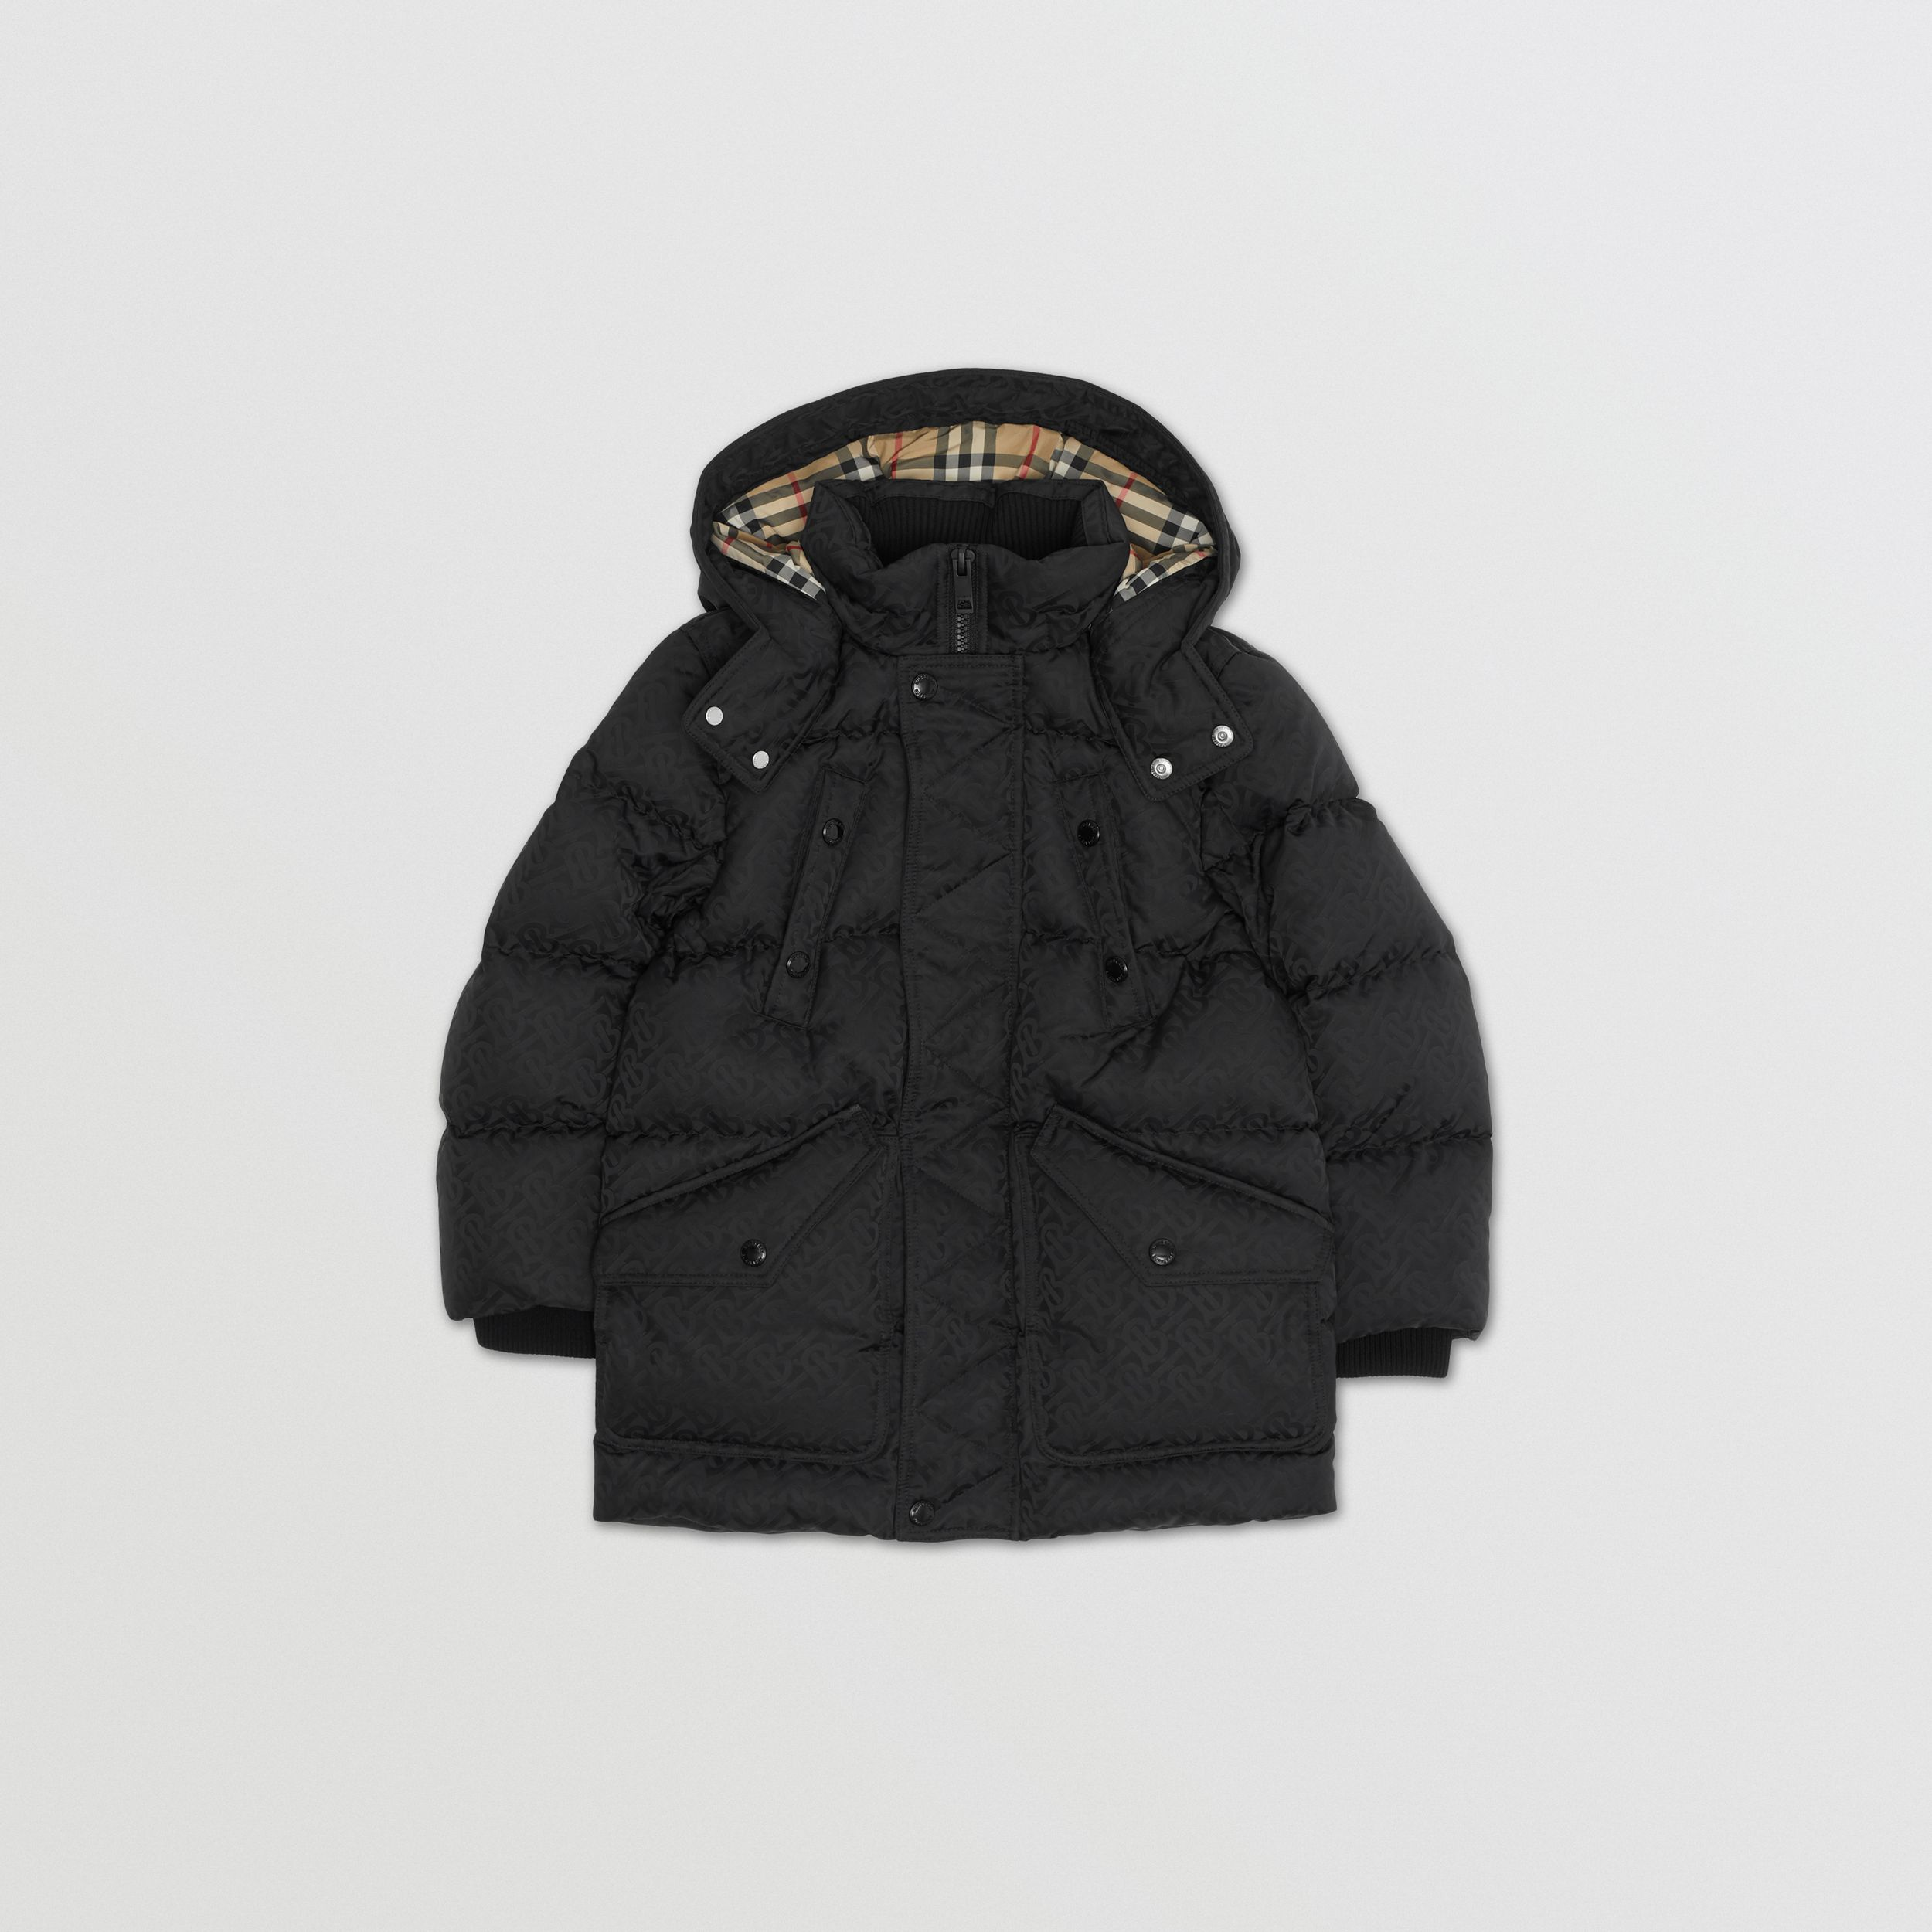 Detachable Hood Monogram Jacquard Puffer Coat in Black | Burberry - 1